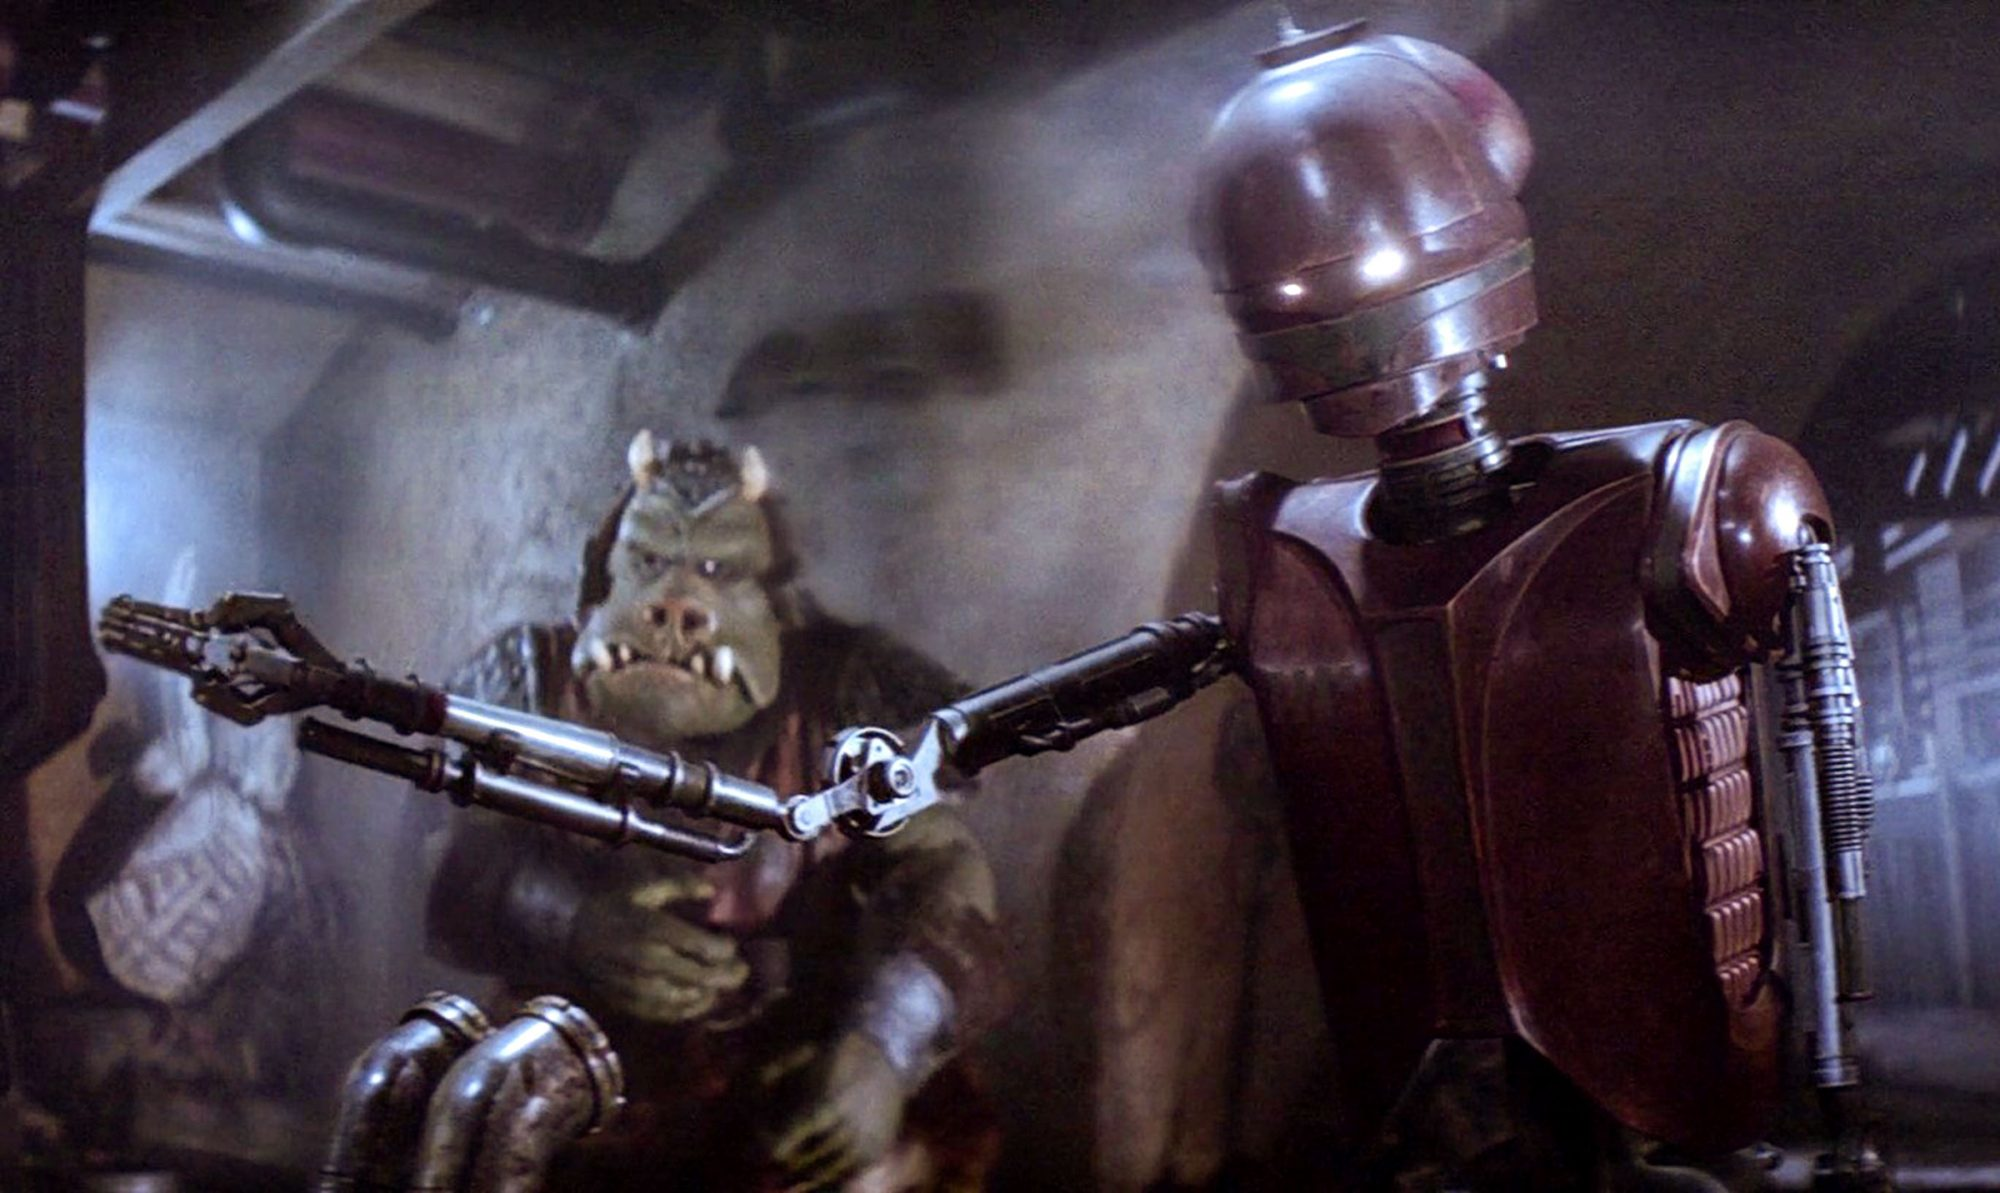 17. EV-9D9 (Return of the Jedi)